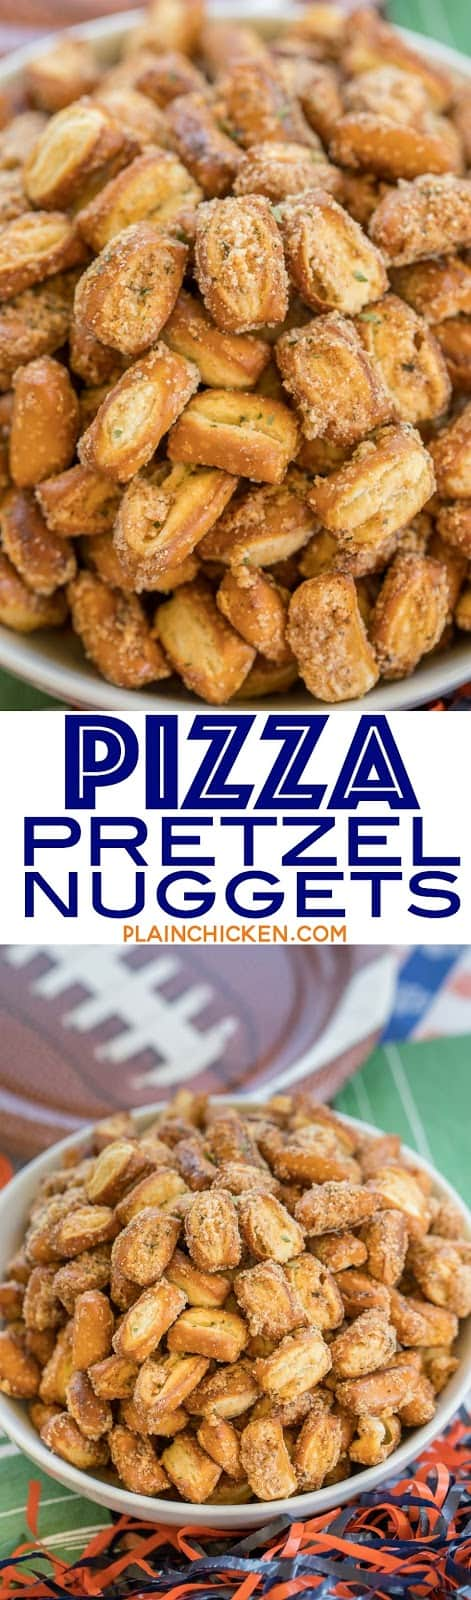 Pizza Pretzel Nuggets - only 4 ingredients!! Tastes like pizza!! Great for tailgating and parties. Can make ahead and store in an air-tight container for later. Will keep for several weeks. Everyone LOVES this easy appetizer recipe!!